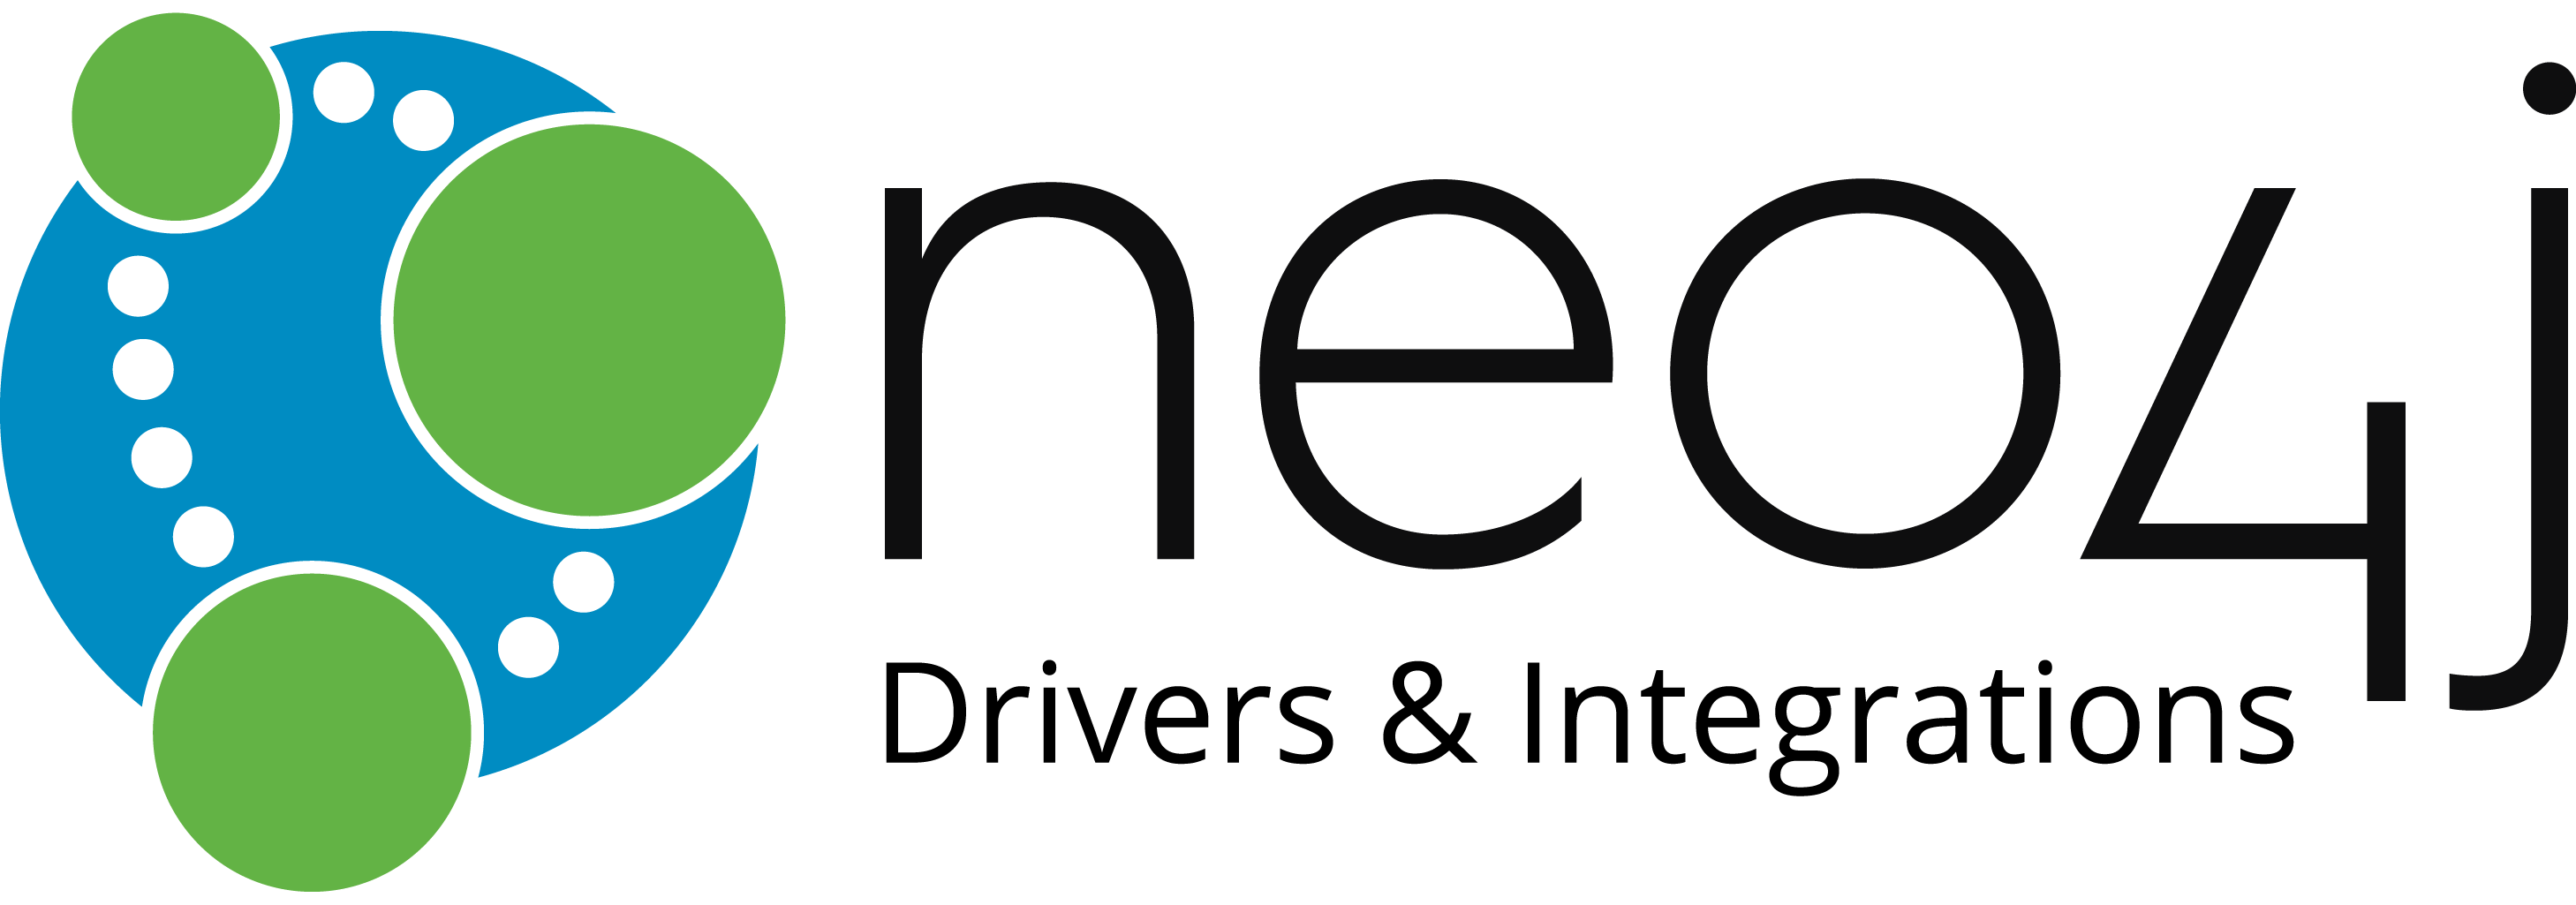 For RDBMS Devs: Learn How to Connect to a Graph Database Using Various Language Drivers for Neo4j